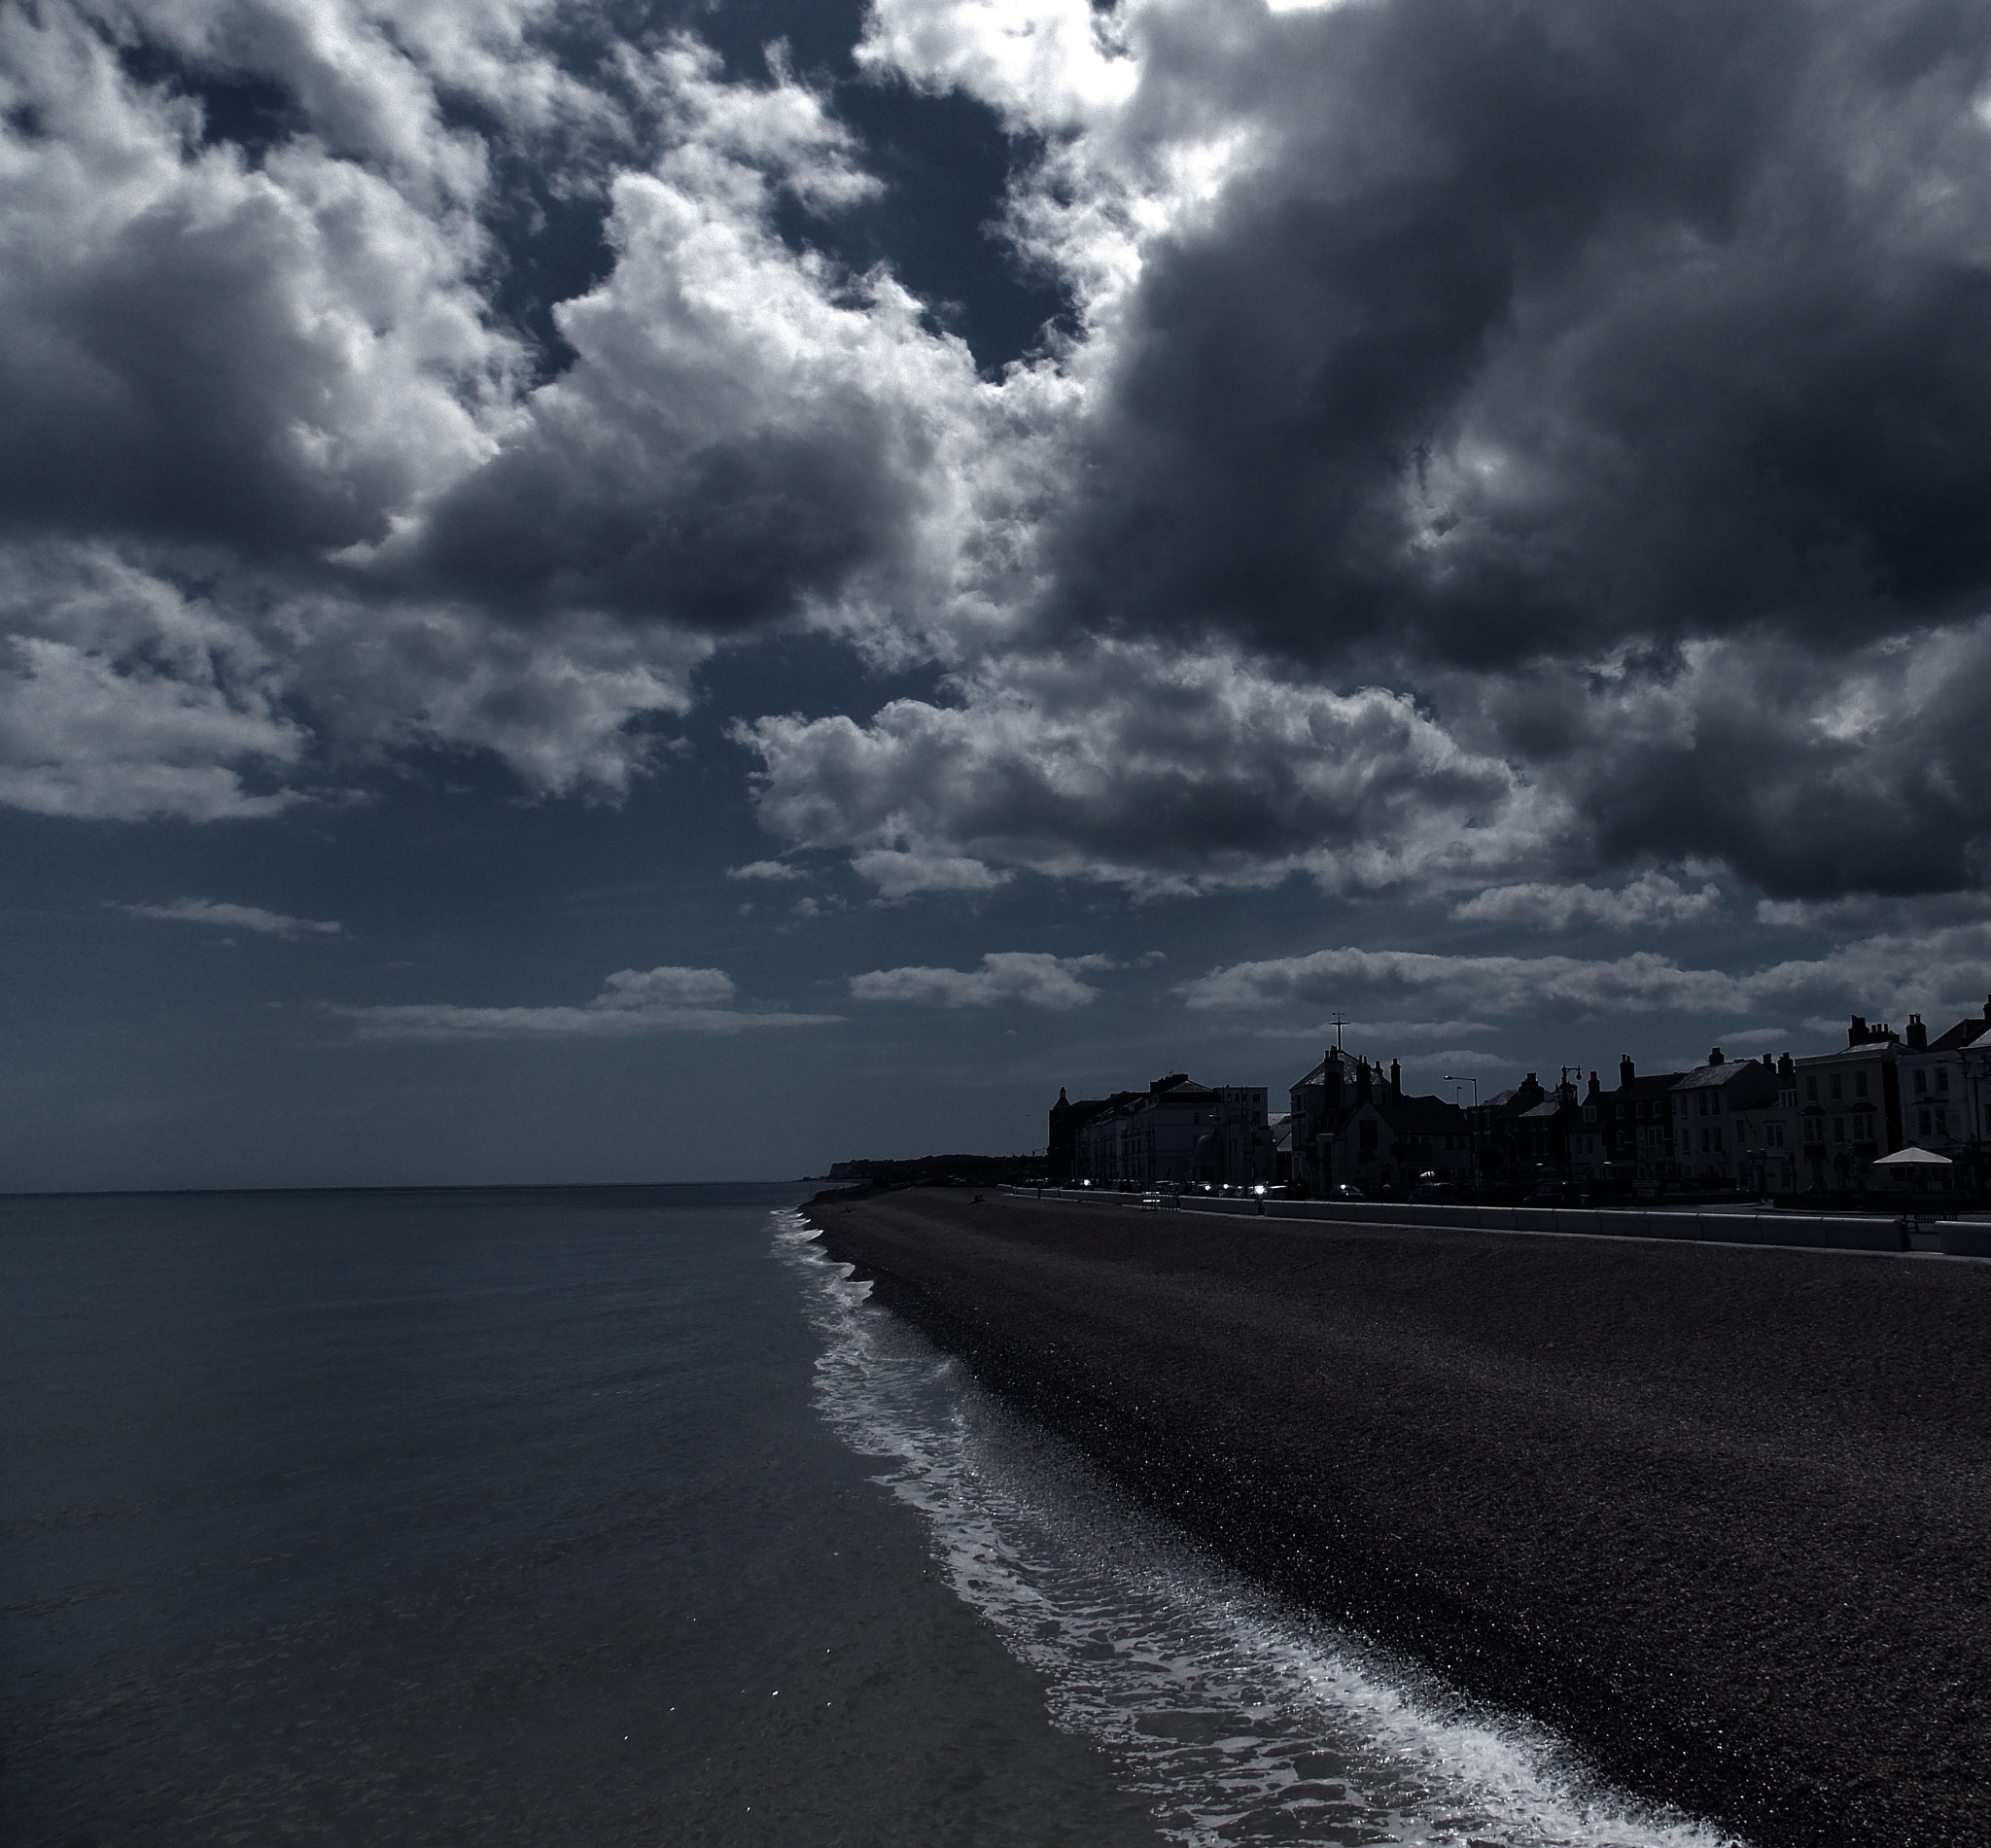 Photograph Dark Storm by David Curry on 500px